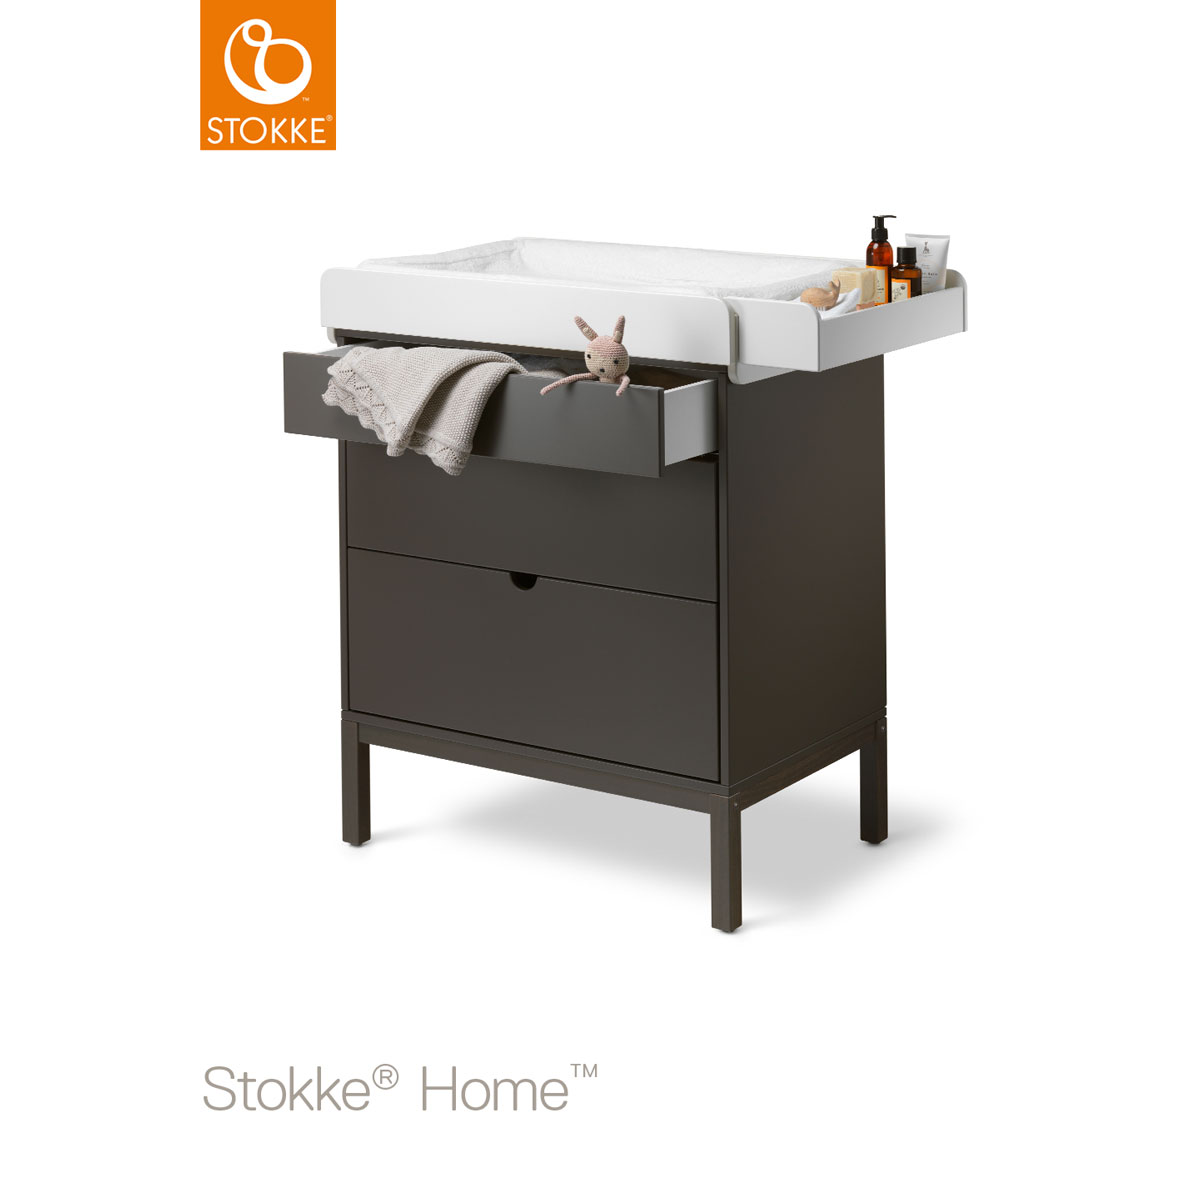 Stokke home bed, commode & wieg hazy grey